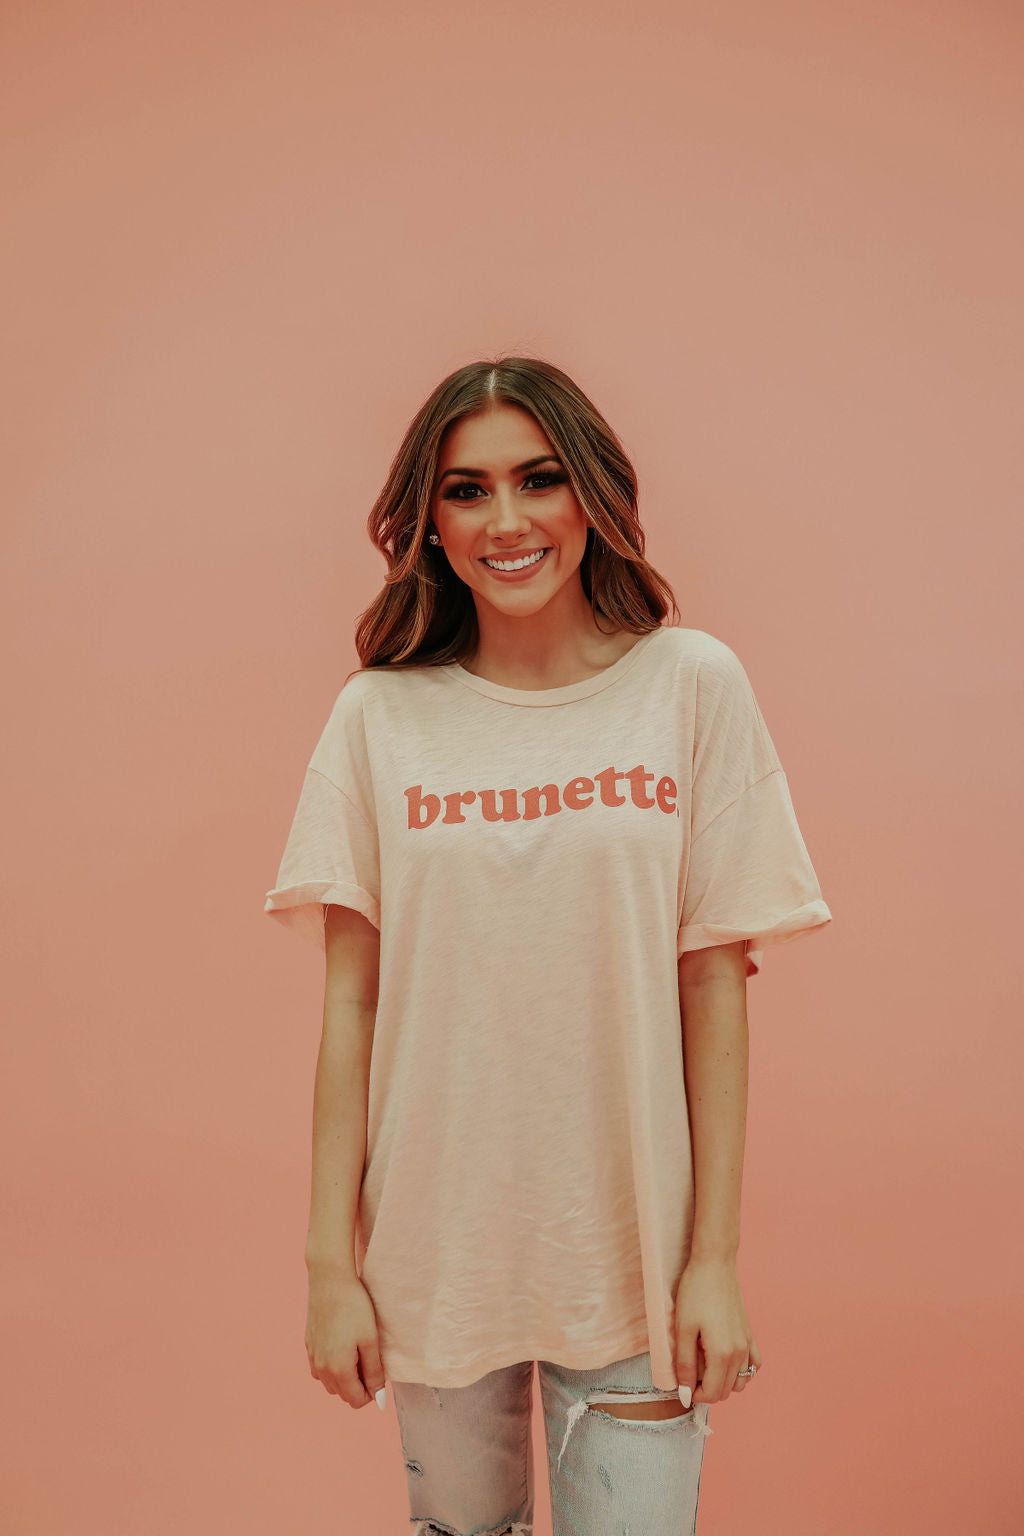 THE BRUNETTE GRAPHIC TEE IN PEACH